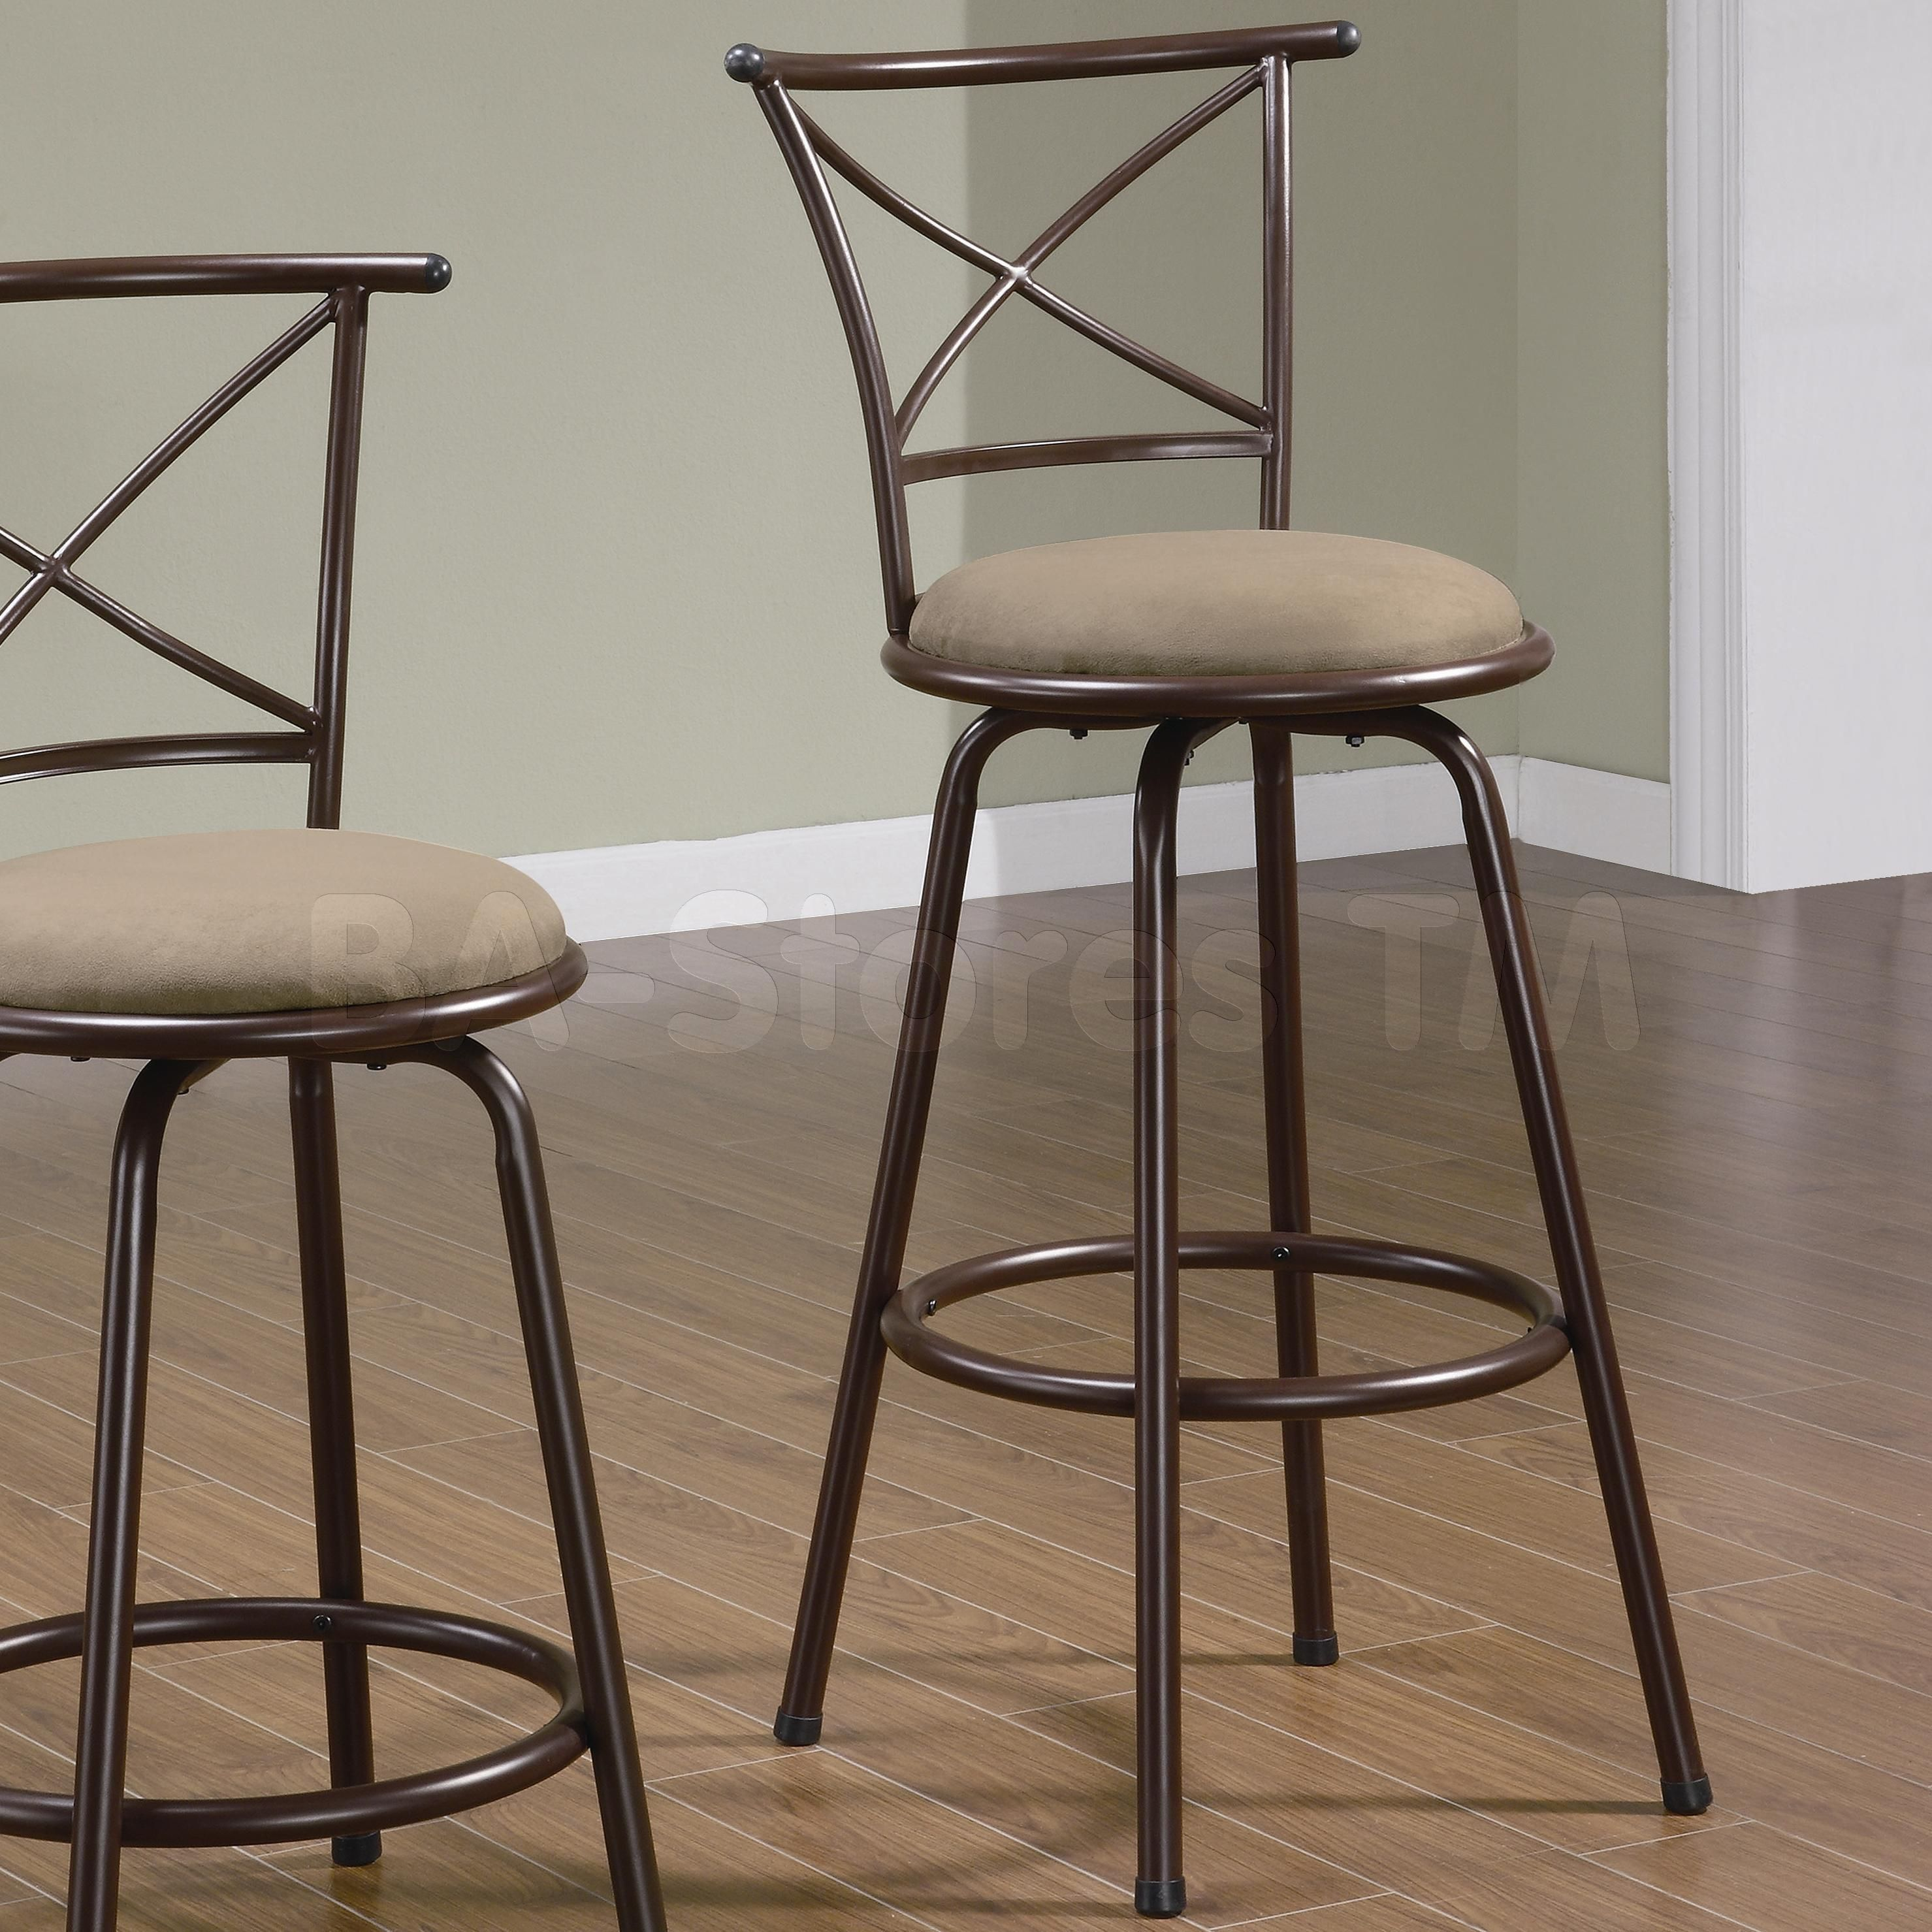 29 X Back Style Metal Bar Stools In Brown Set Of